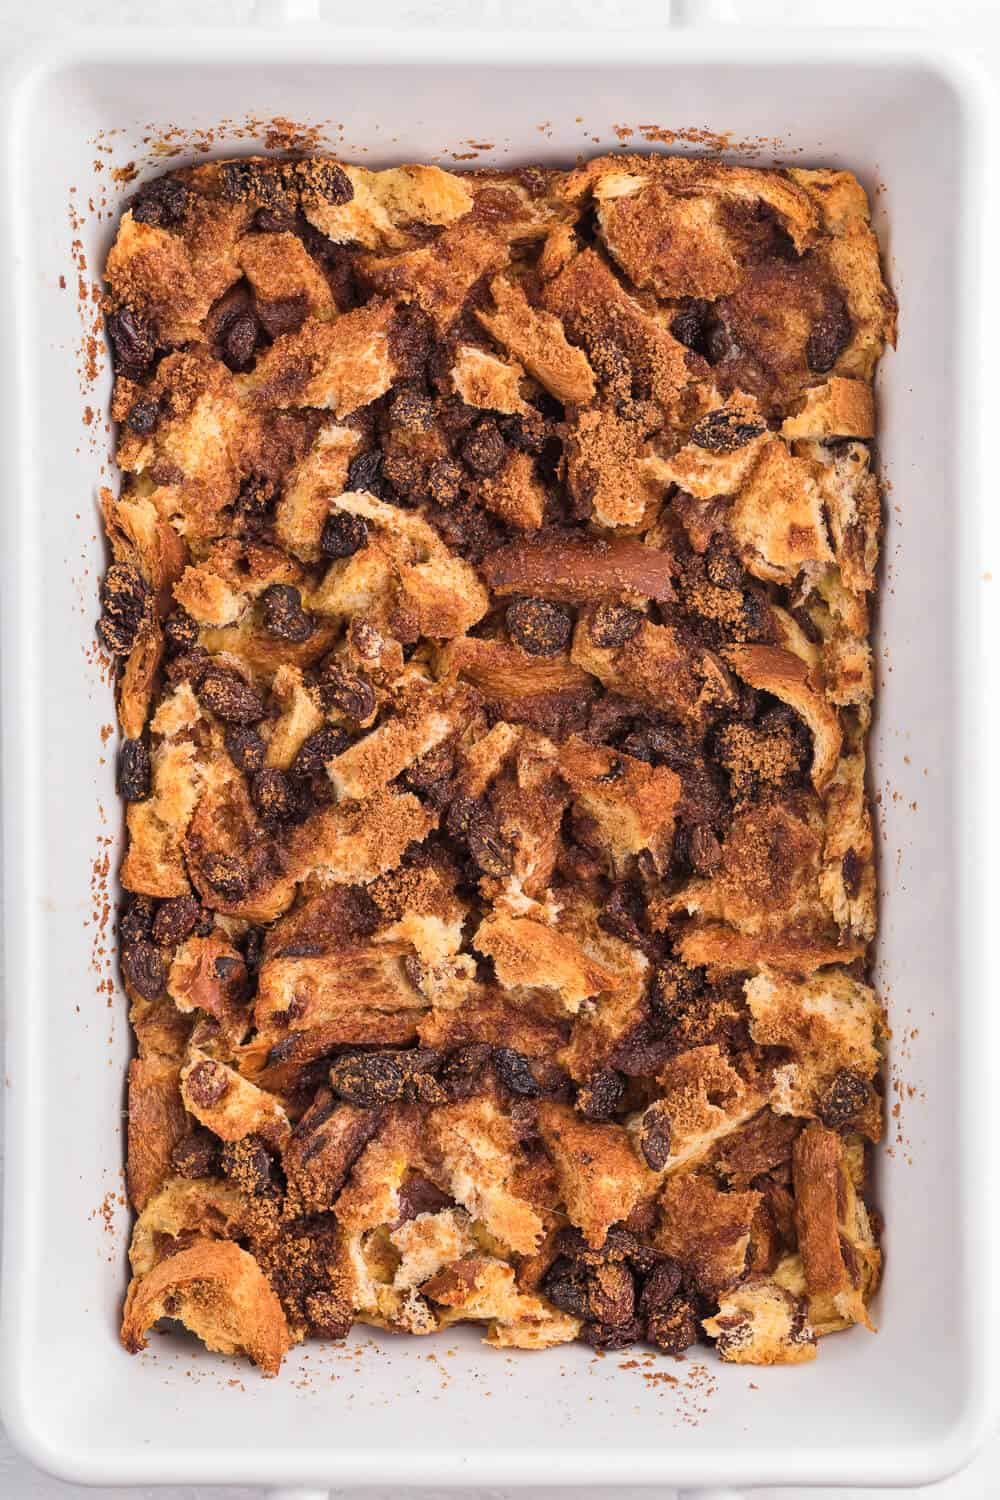 Cinnamon Raisin French Toast Casserole - Sweeten your mornings with this divine baked French Toast casserole recipe! It's bursting with raisins, cinnamon and yummy raisin bread.